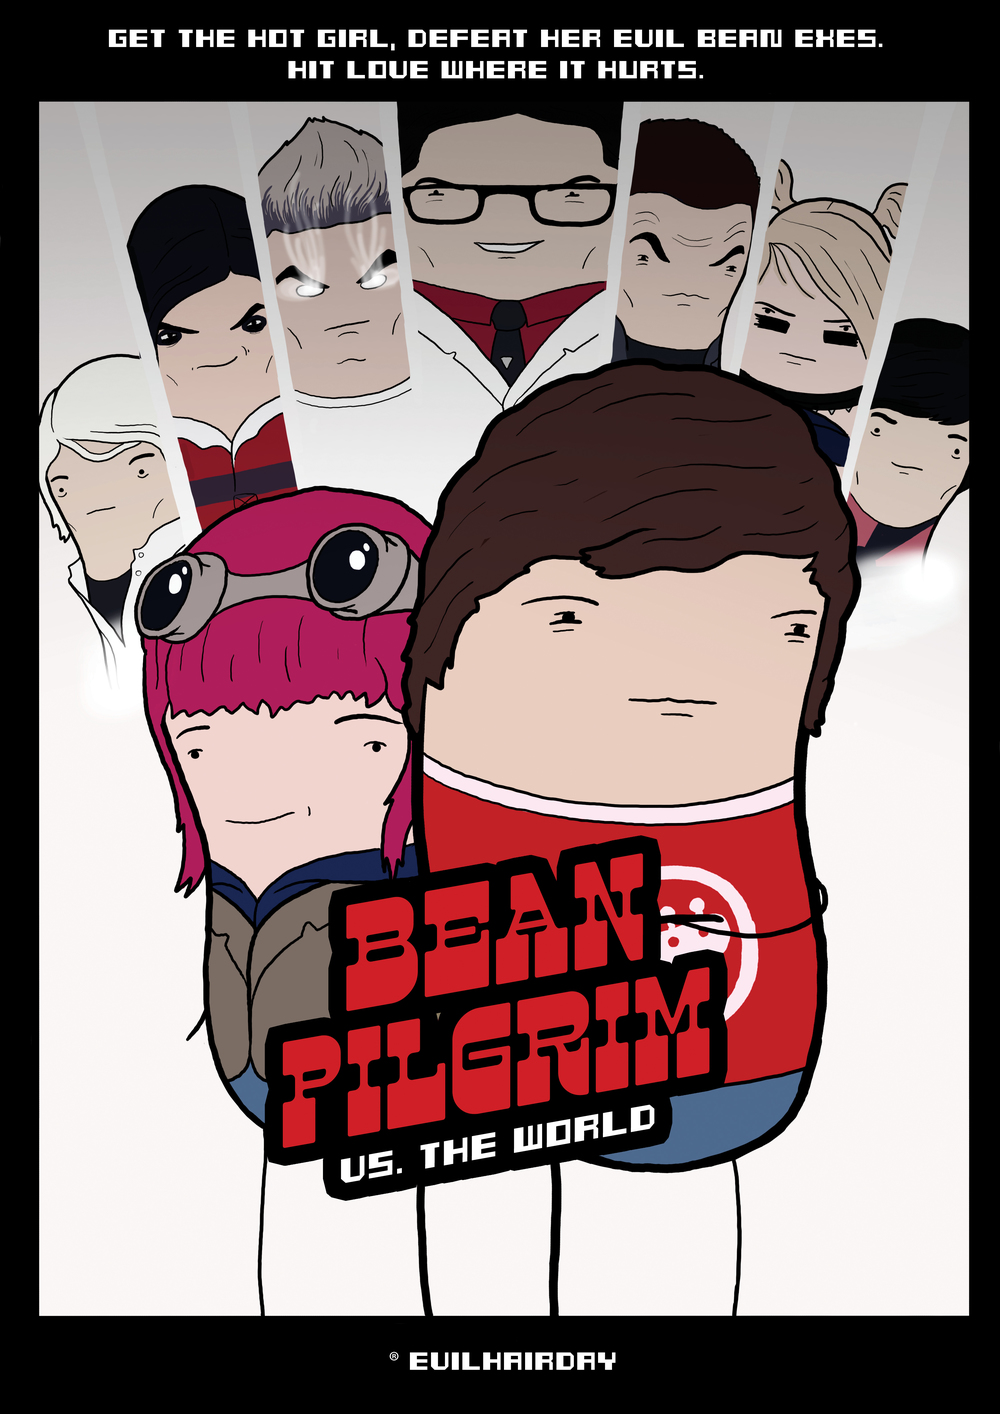 bean pilgrim vs the world.jpg